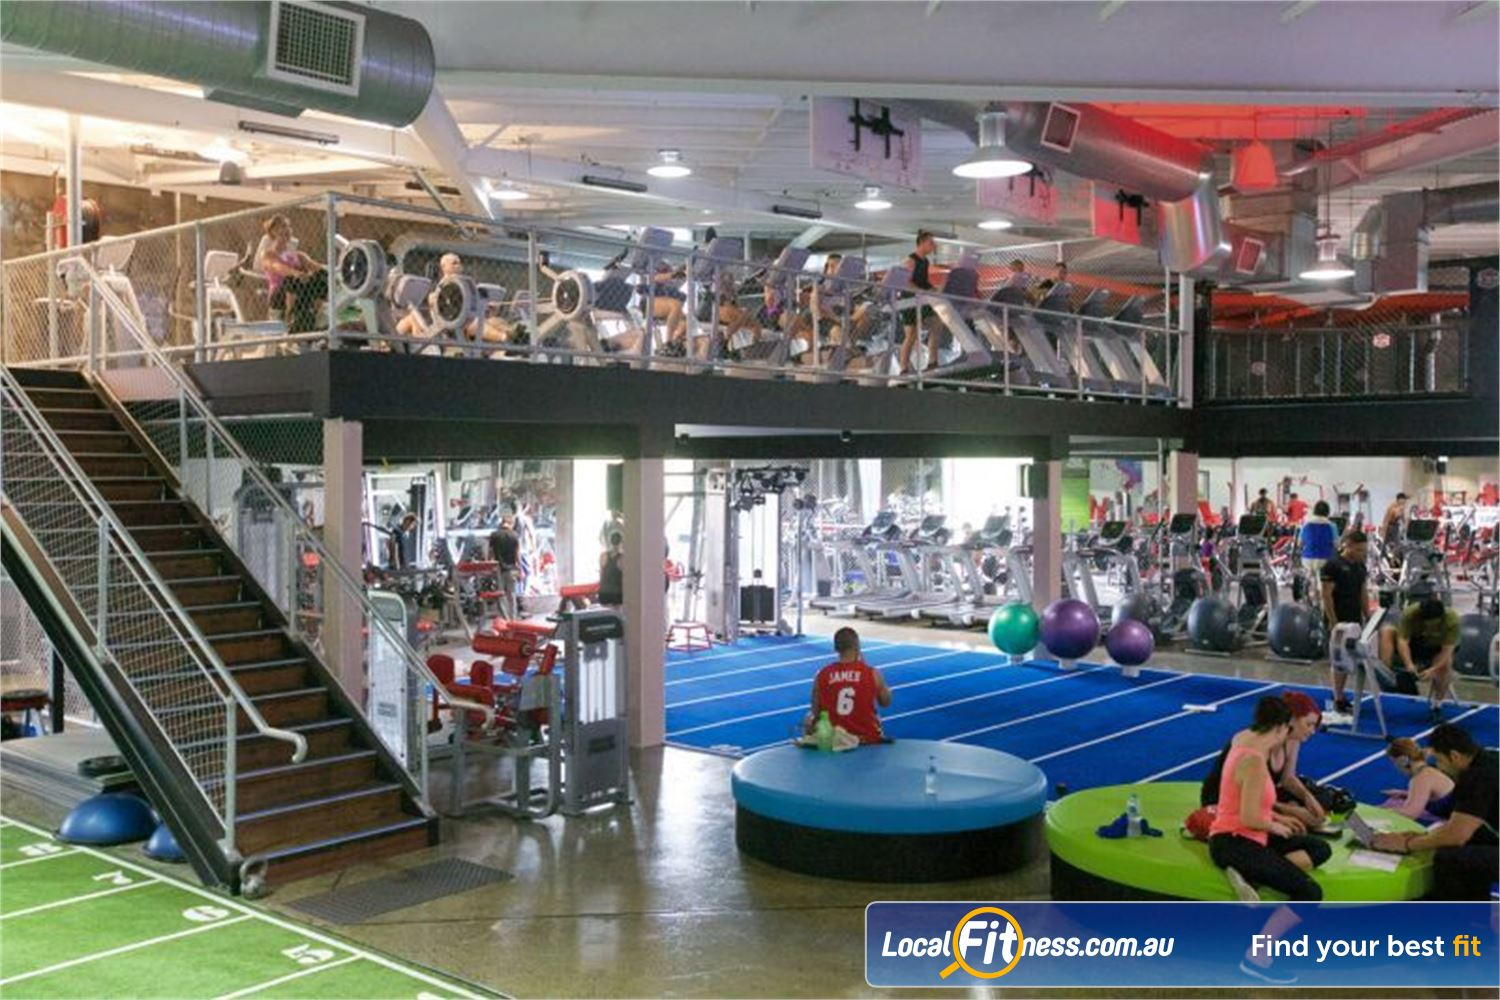 Goodlife Health Clubs Springwood Our Springwood gym provides 3000 sq/m of fitness under one roof.